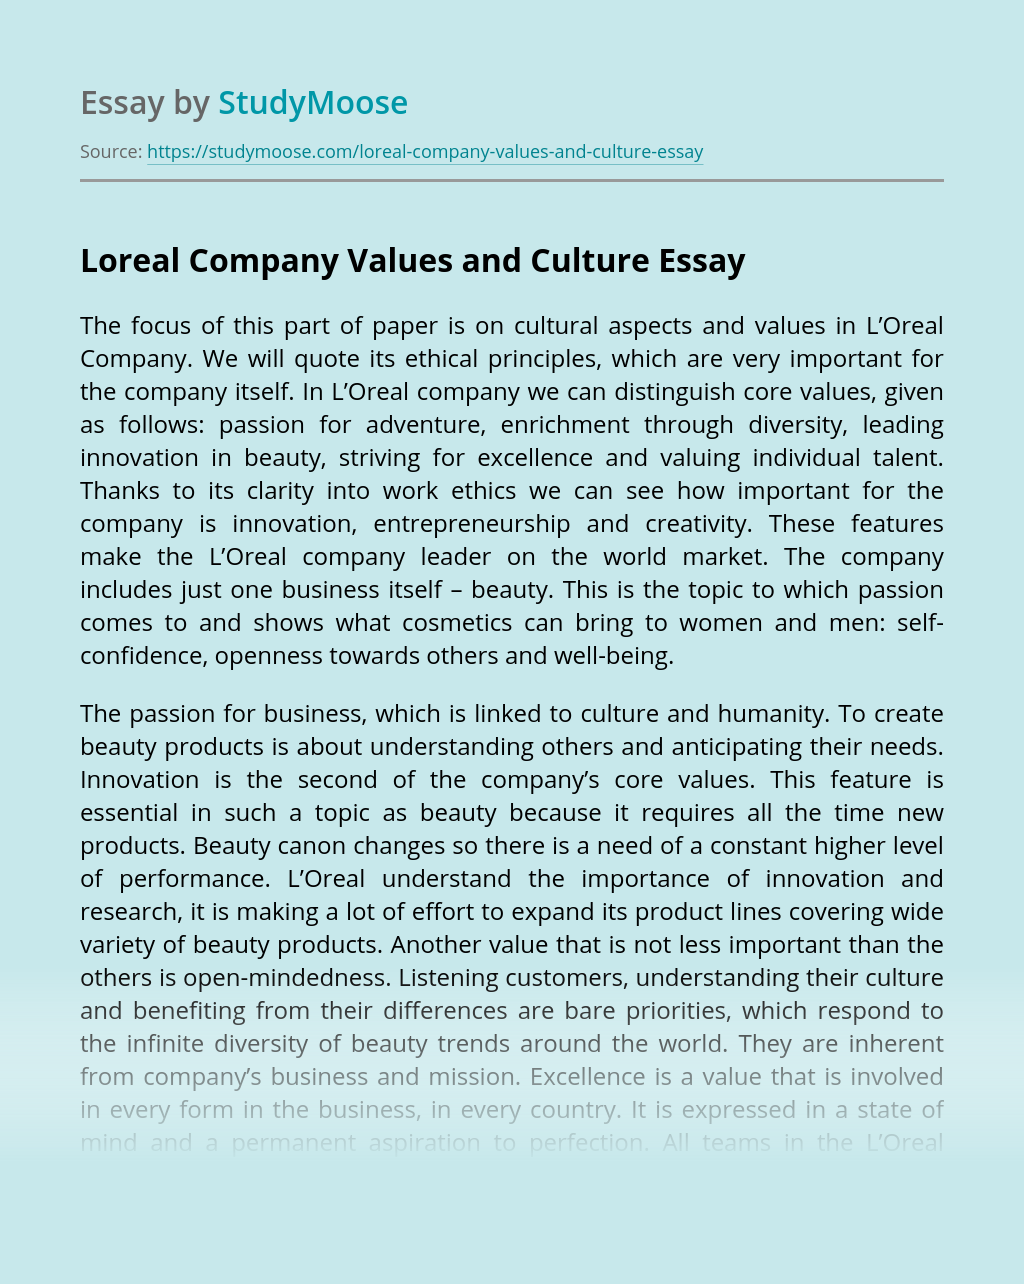 Loreal Company Values and Culture